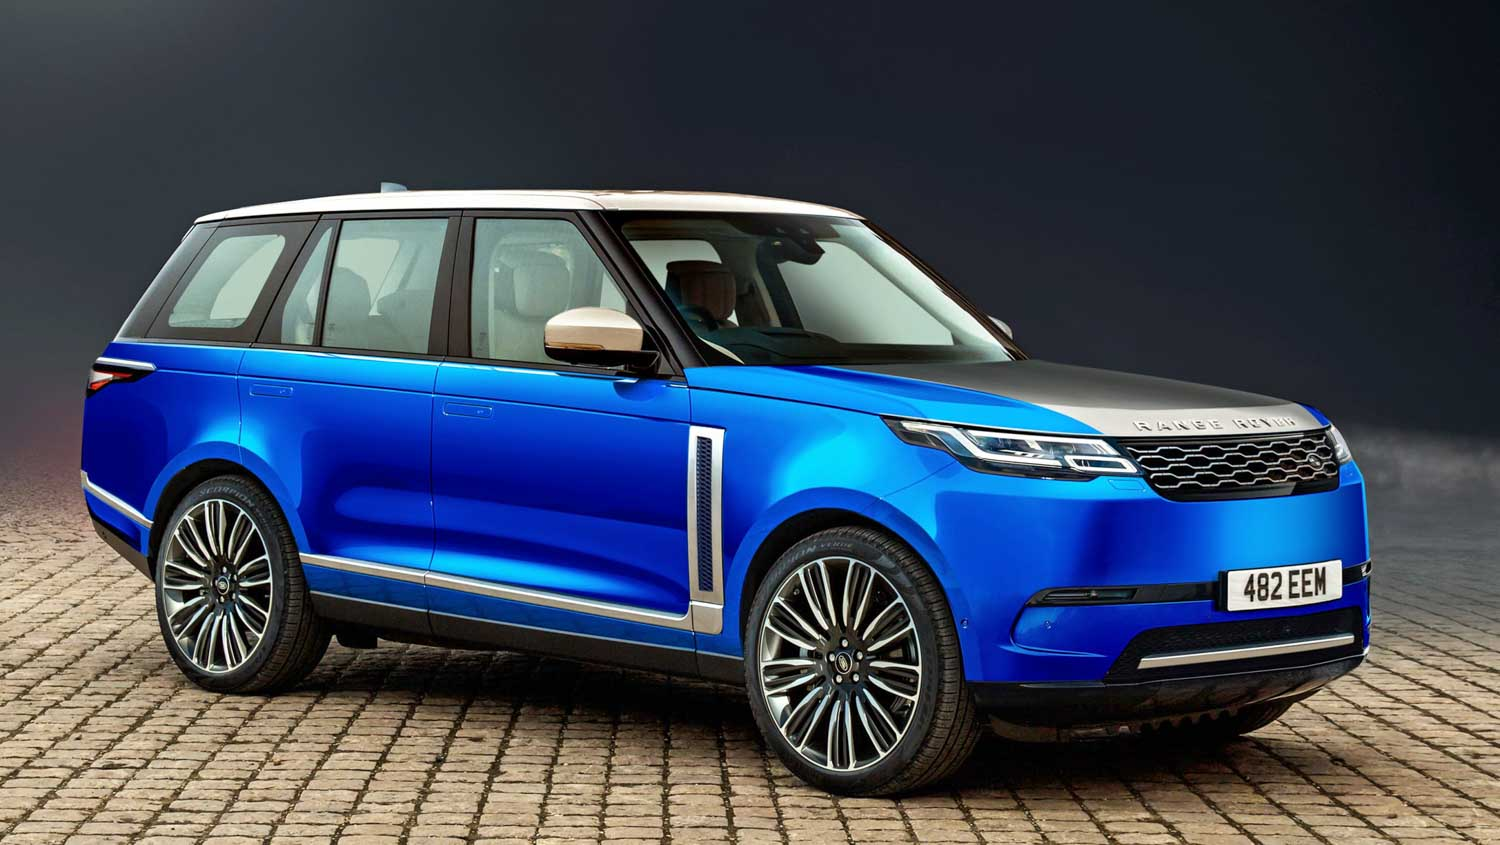 2021 Range Rover (New-Gen) In The Works; Likely Debut Later This Year